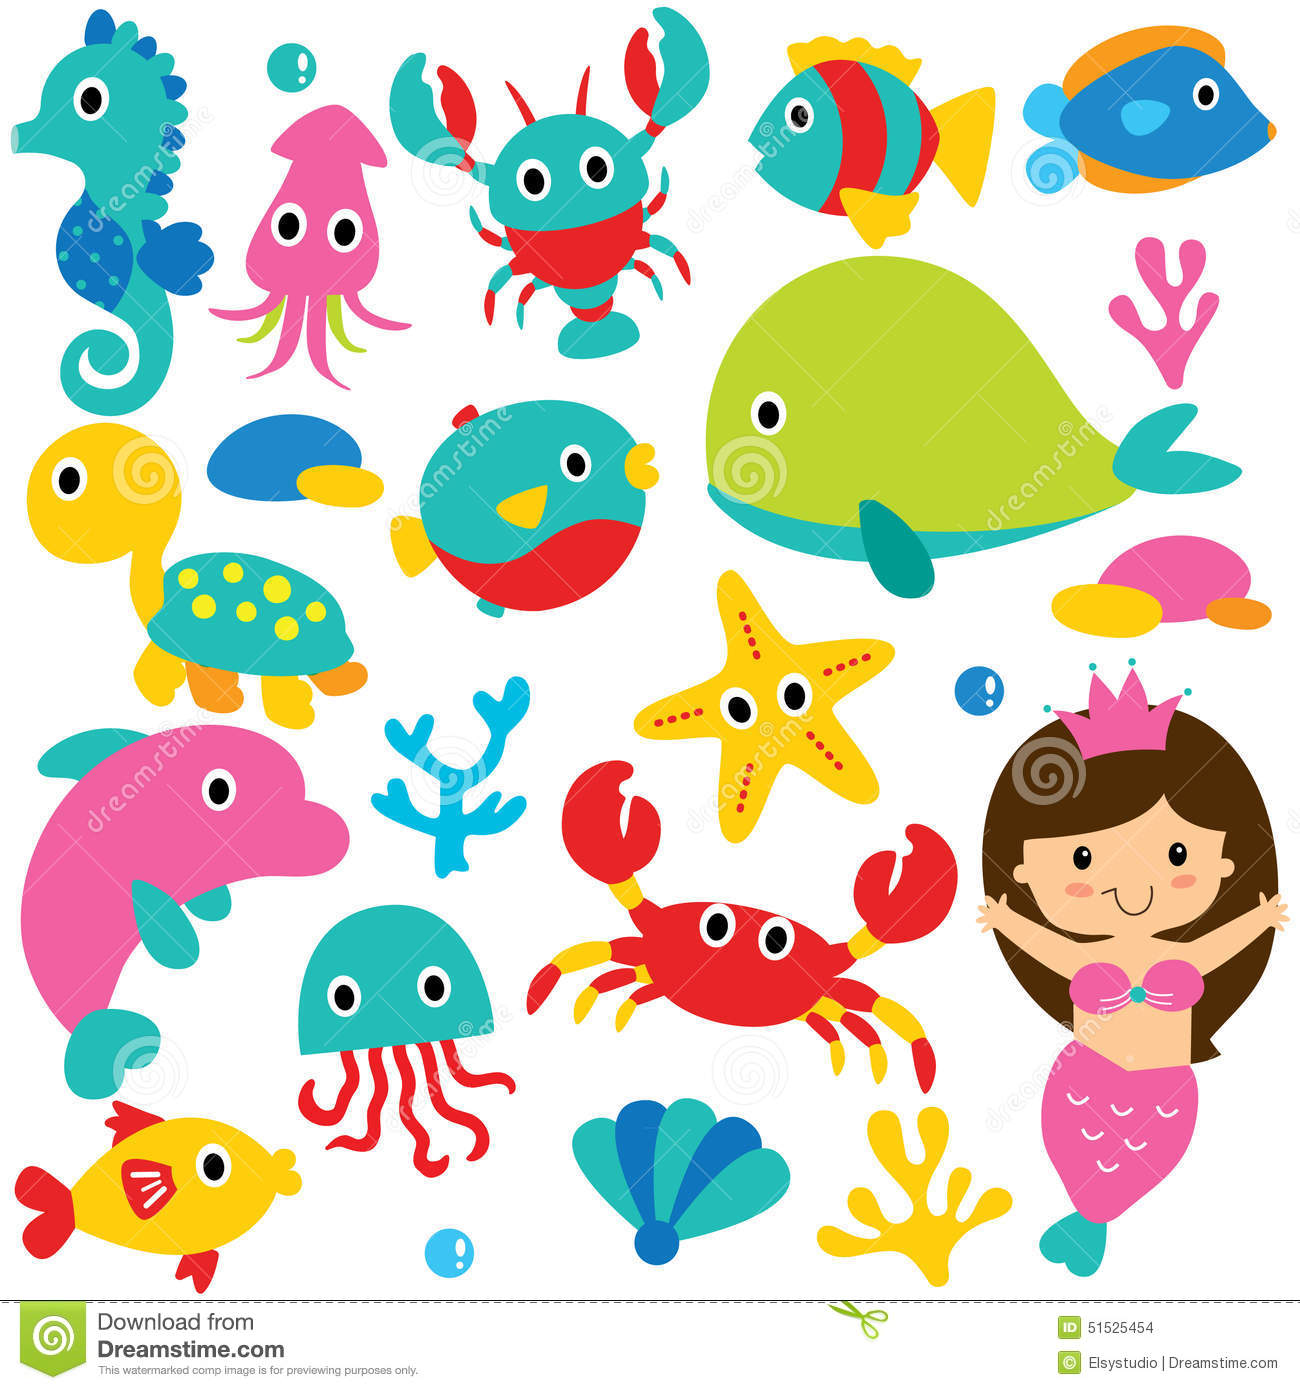 1000 images about FAVE SEA LIFE on Pinterest | Dolphins, Clip art and Fish